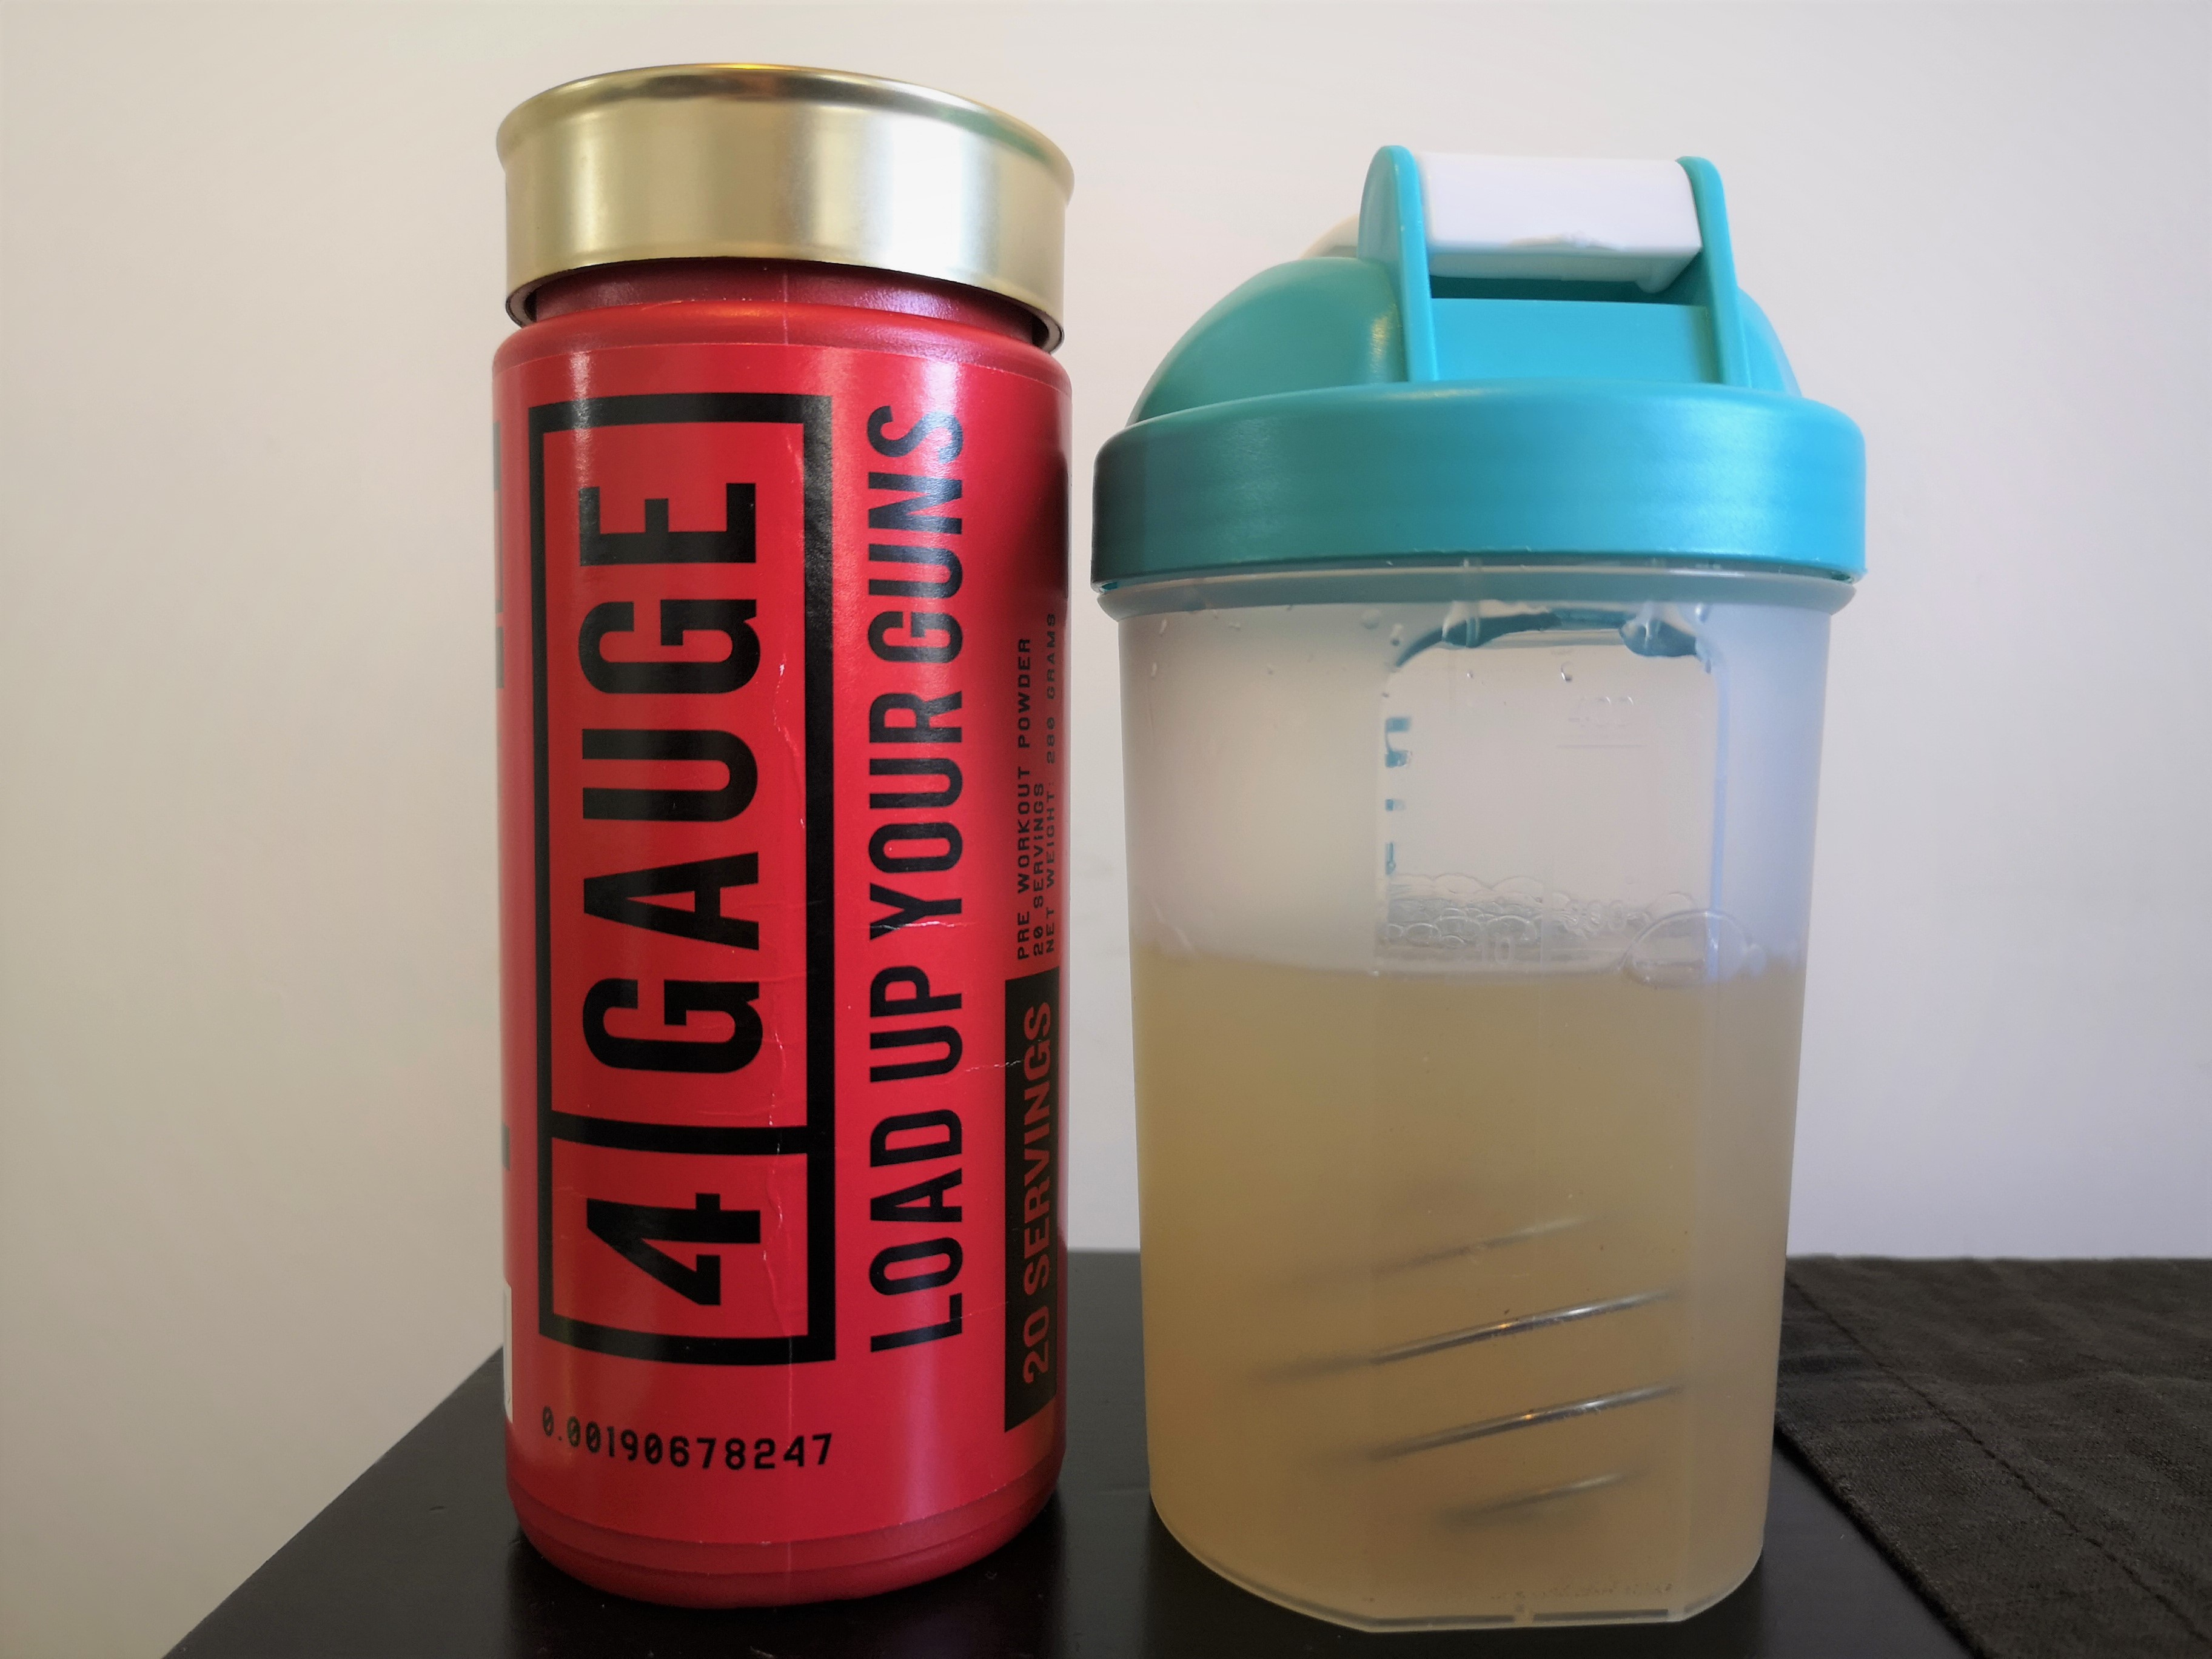 4 gauge and shaker